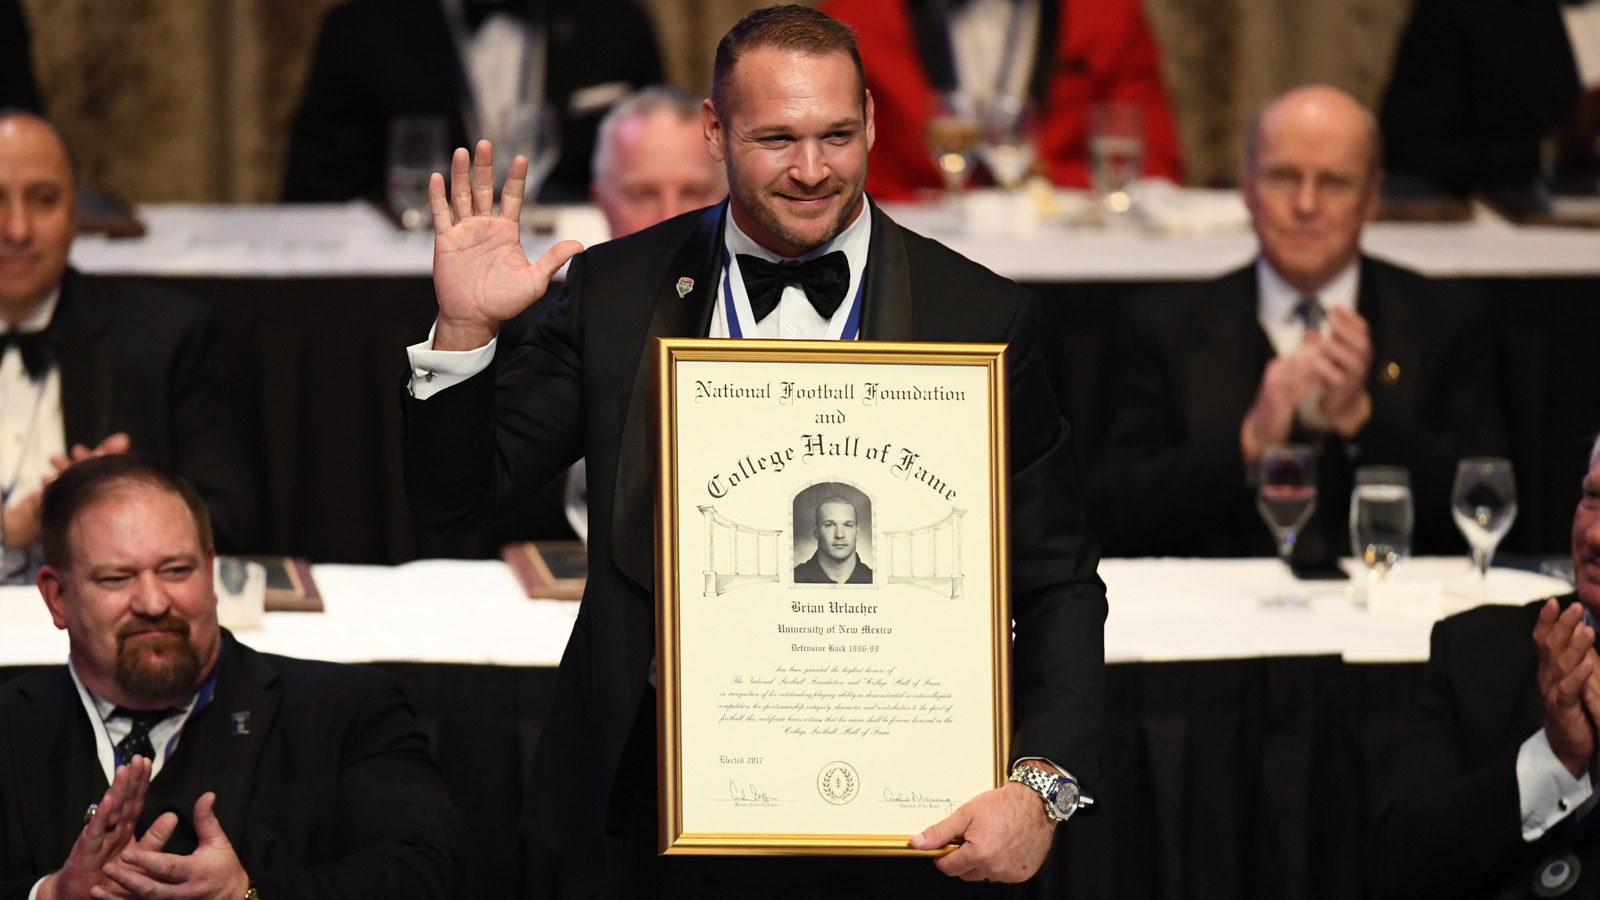 Urlacher enshrined into NFF College Football Hall of Fame